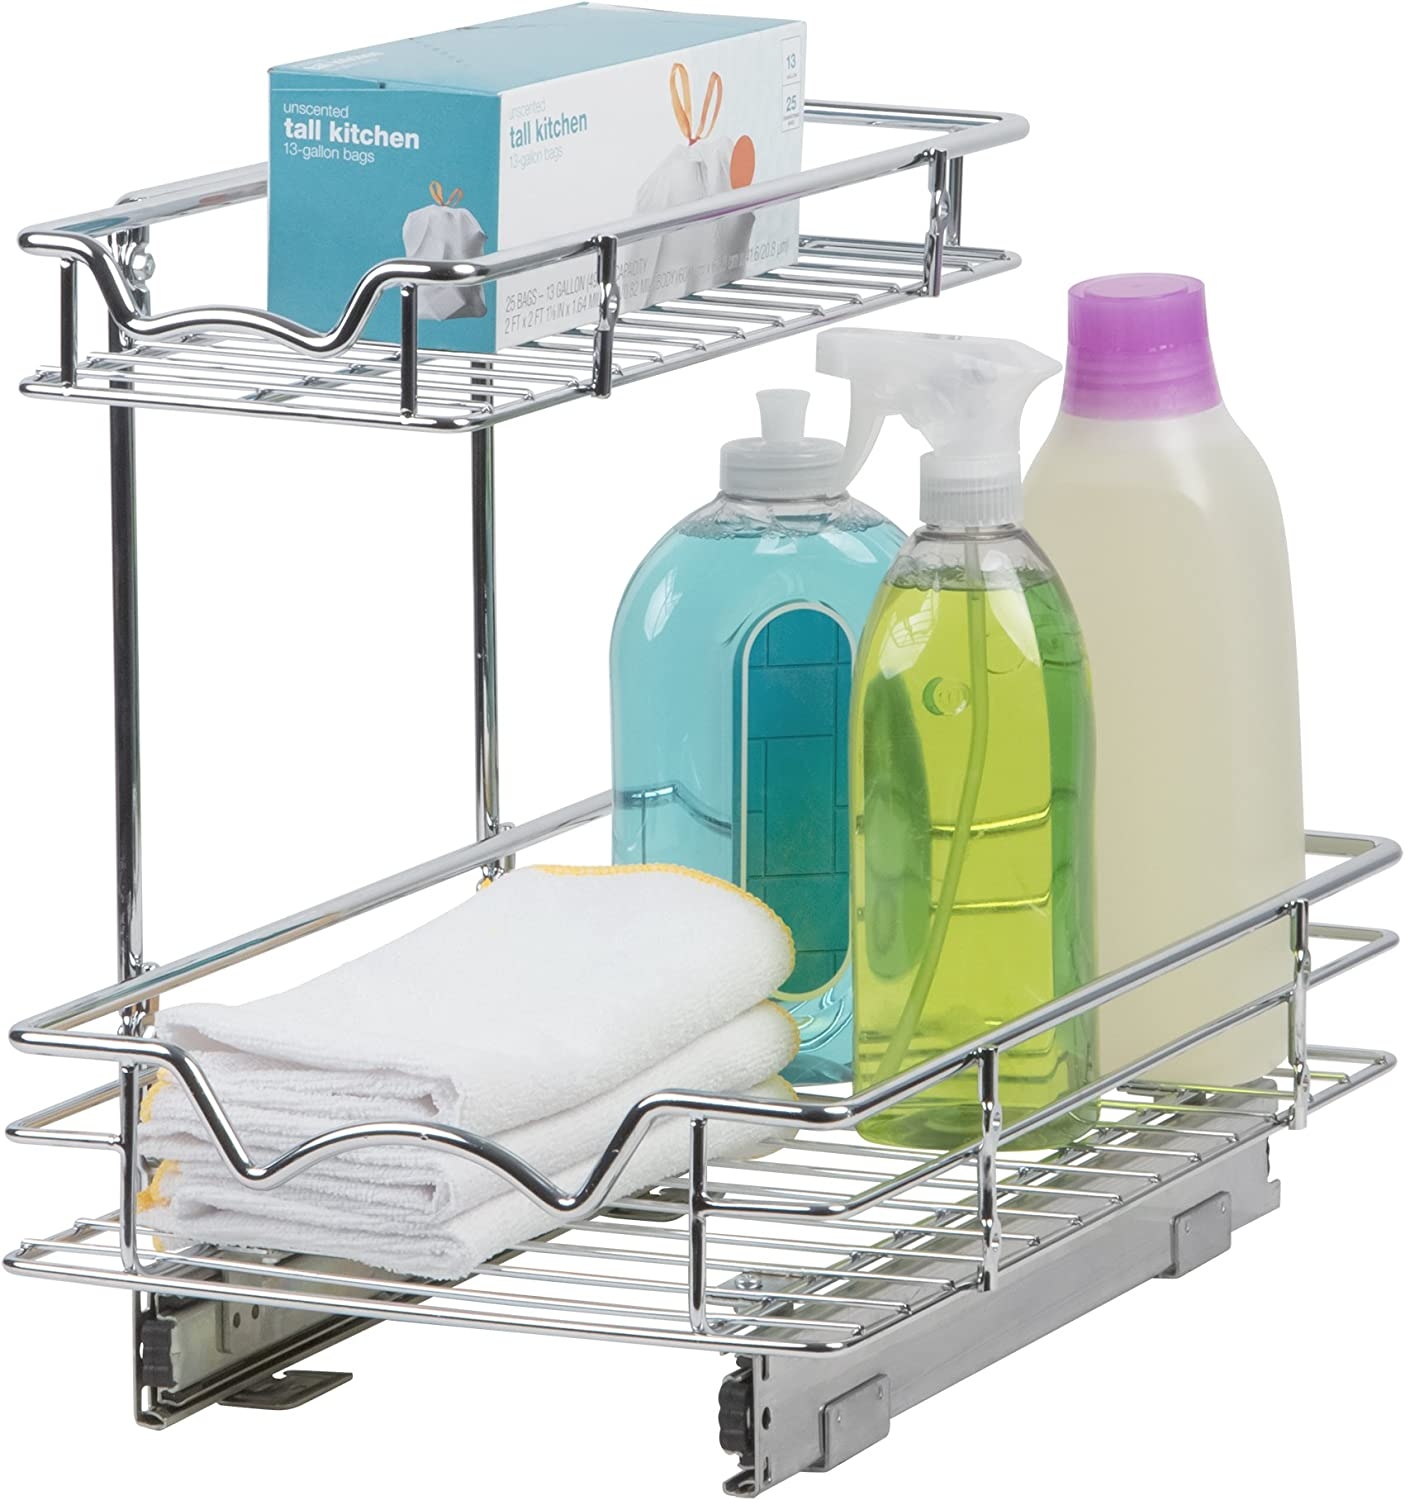 Amazon Com Richards Homewares Under The Sink Pull Out Drawer Kitchen Vanity Storage Slideout Cabinet Organizer Roll Out 11 W X18 D X14 5 H Requires At Least 12 5 Opening Heavy Duty Metal Basket 18 D